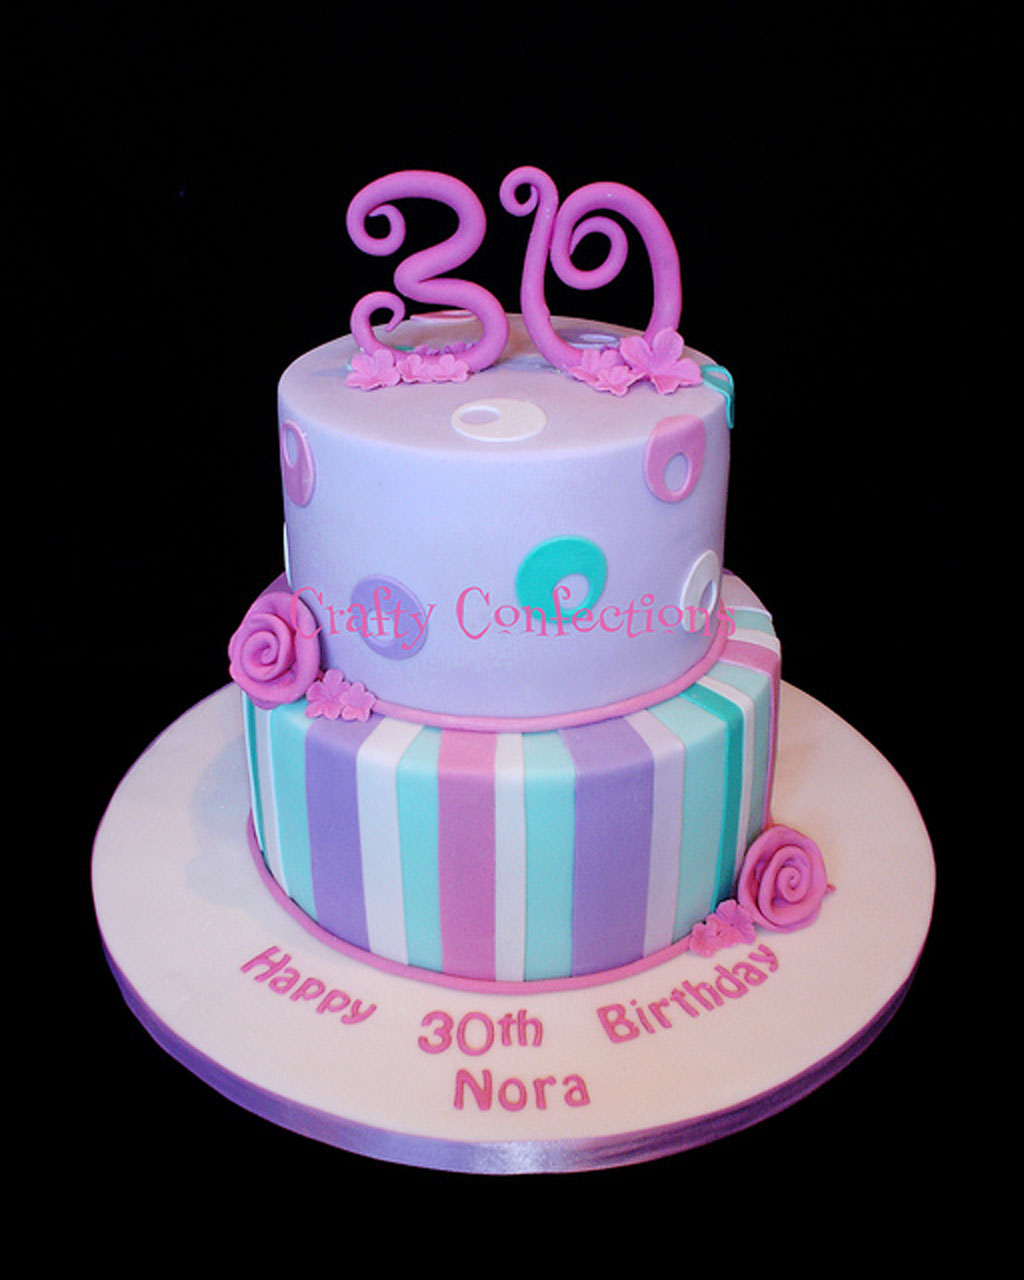 Birthday Cakes For 30 Year Old Woman Birthday Cake Cake Ideas by